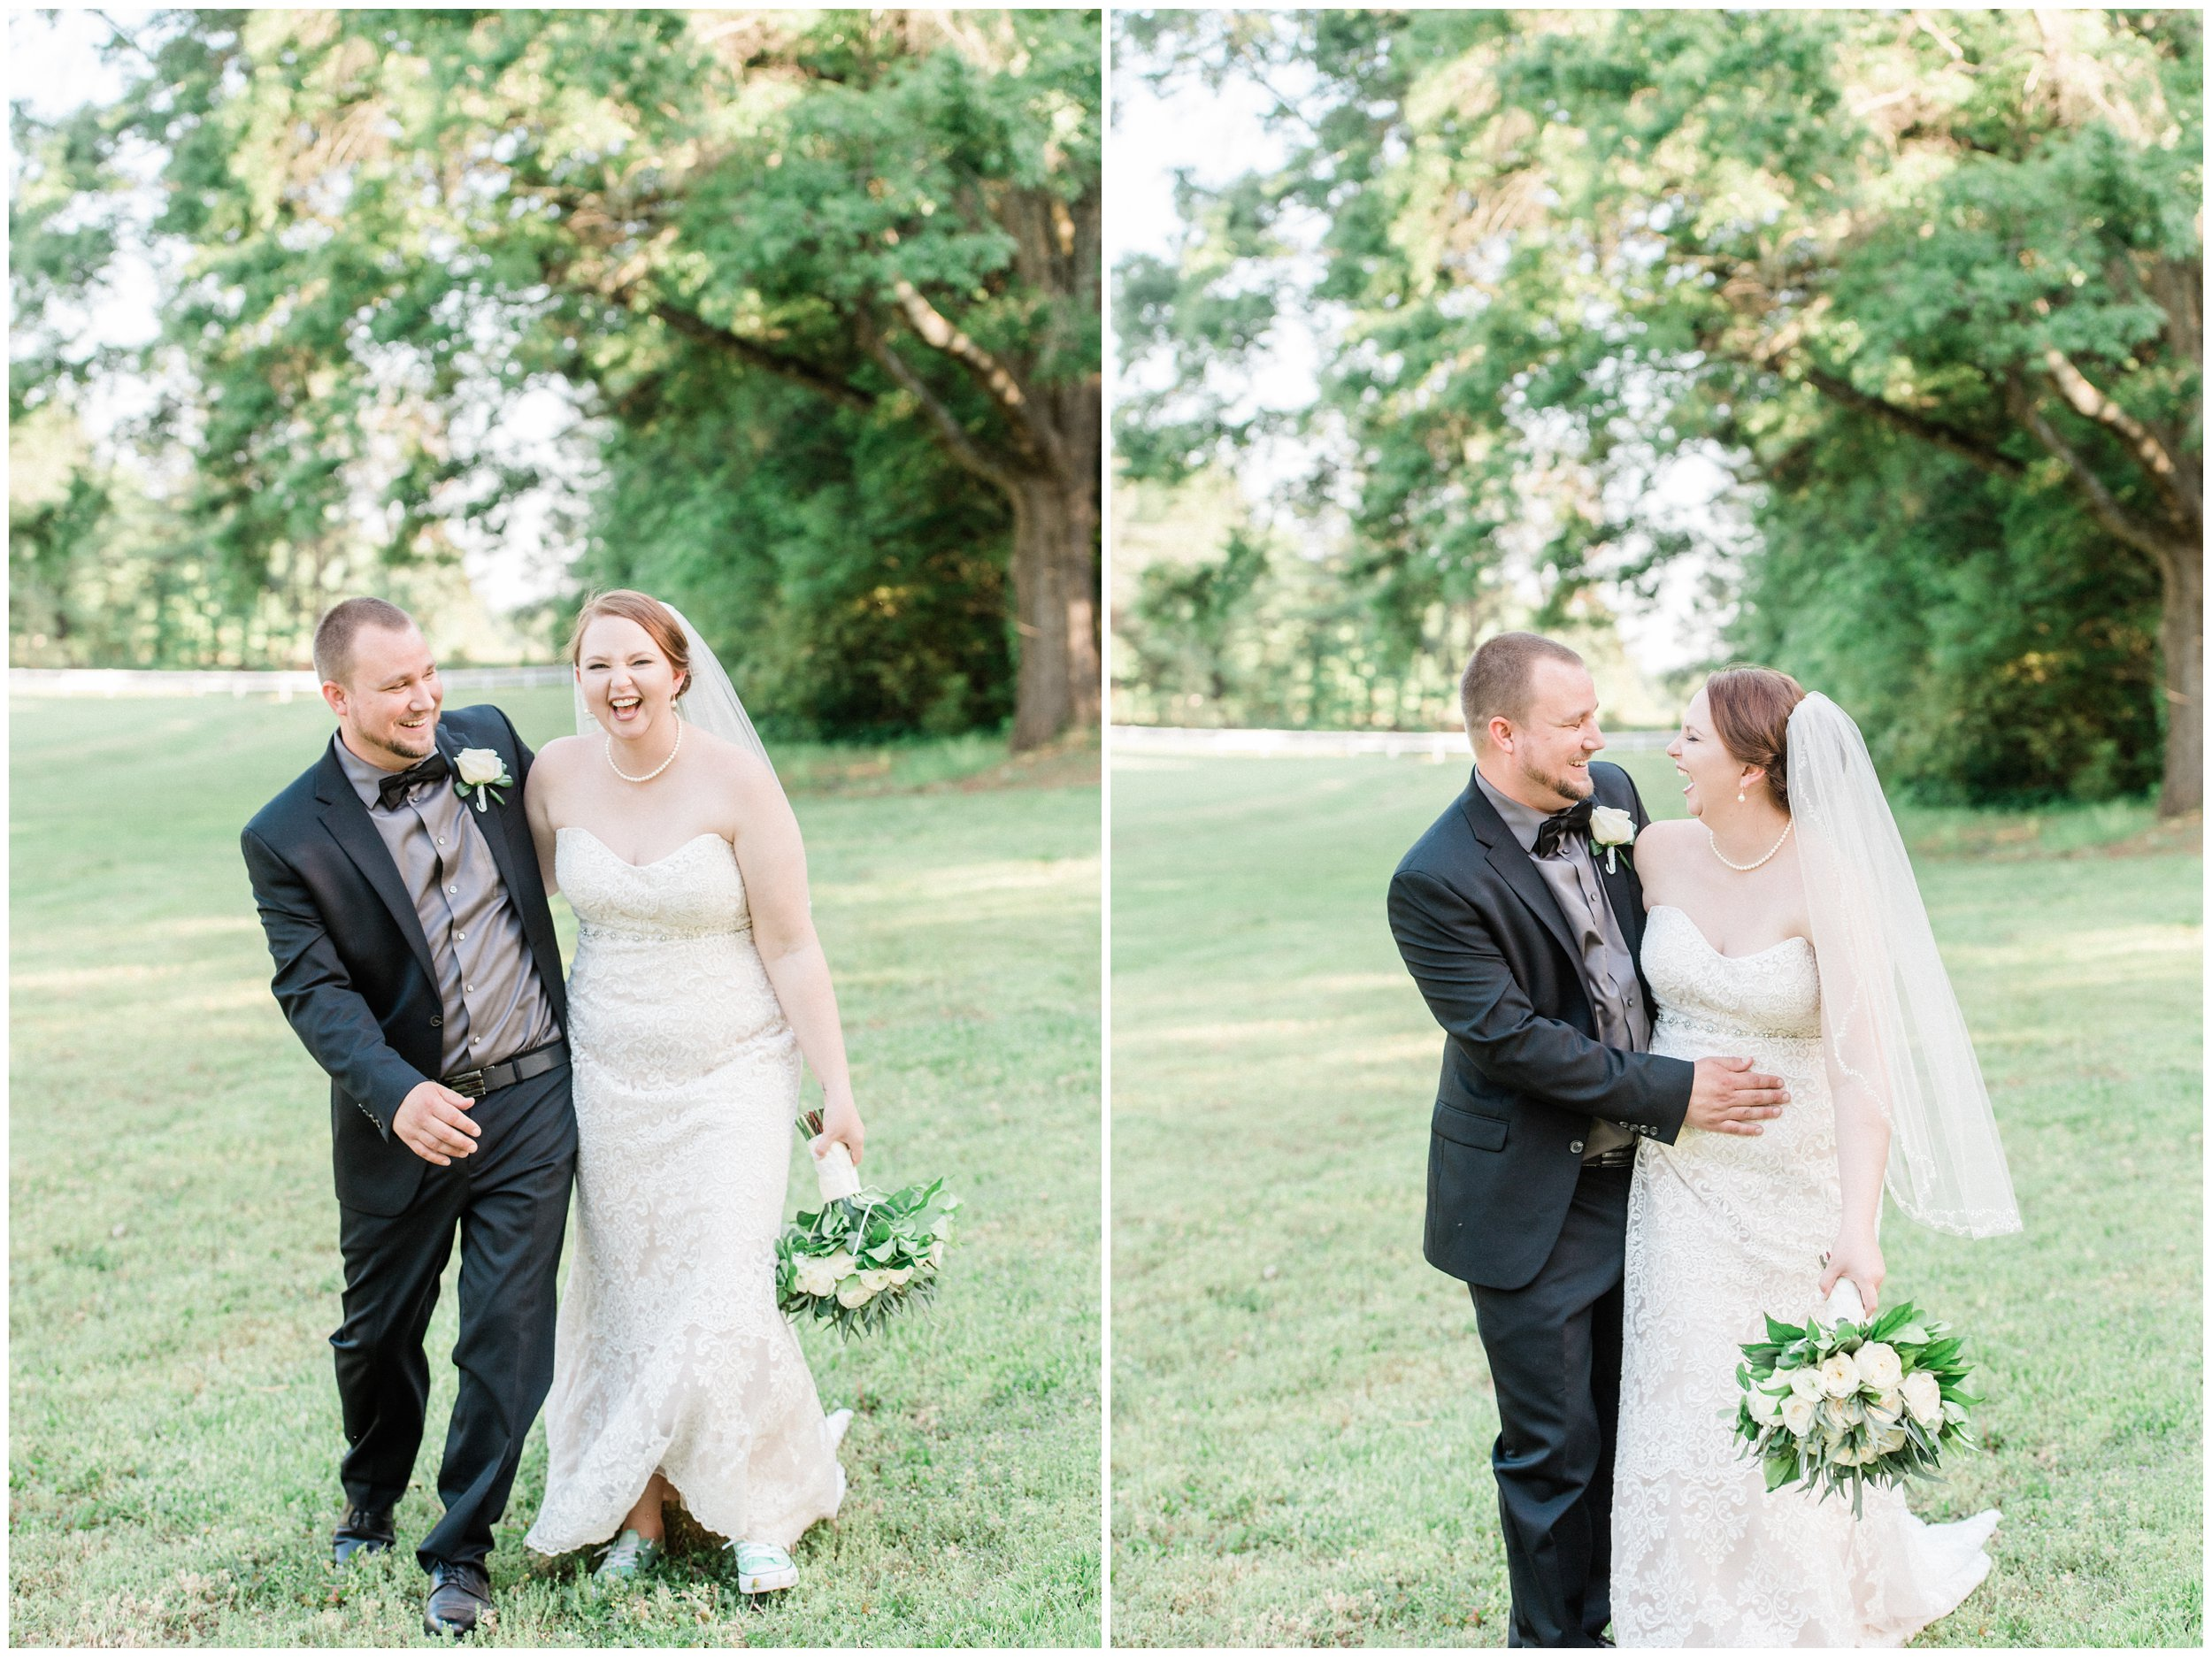 newlyweds laughing during wedding portraits